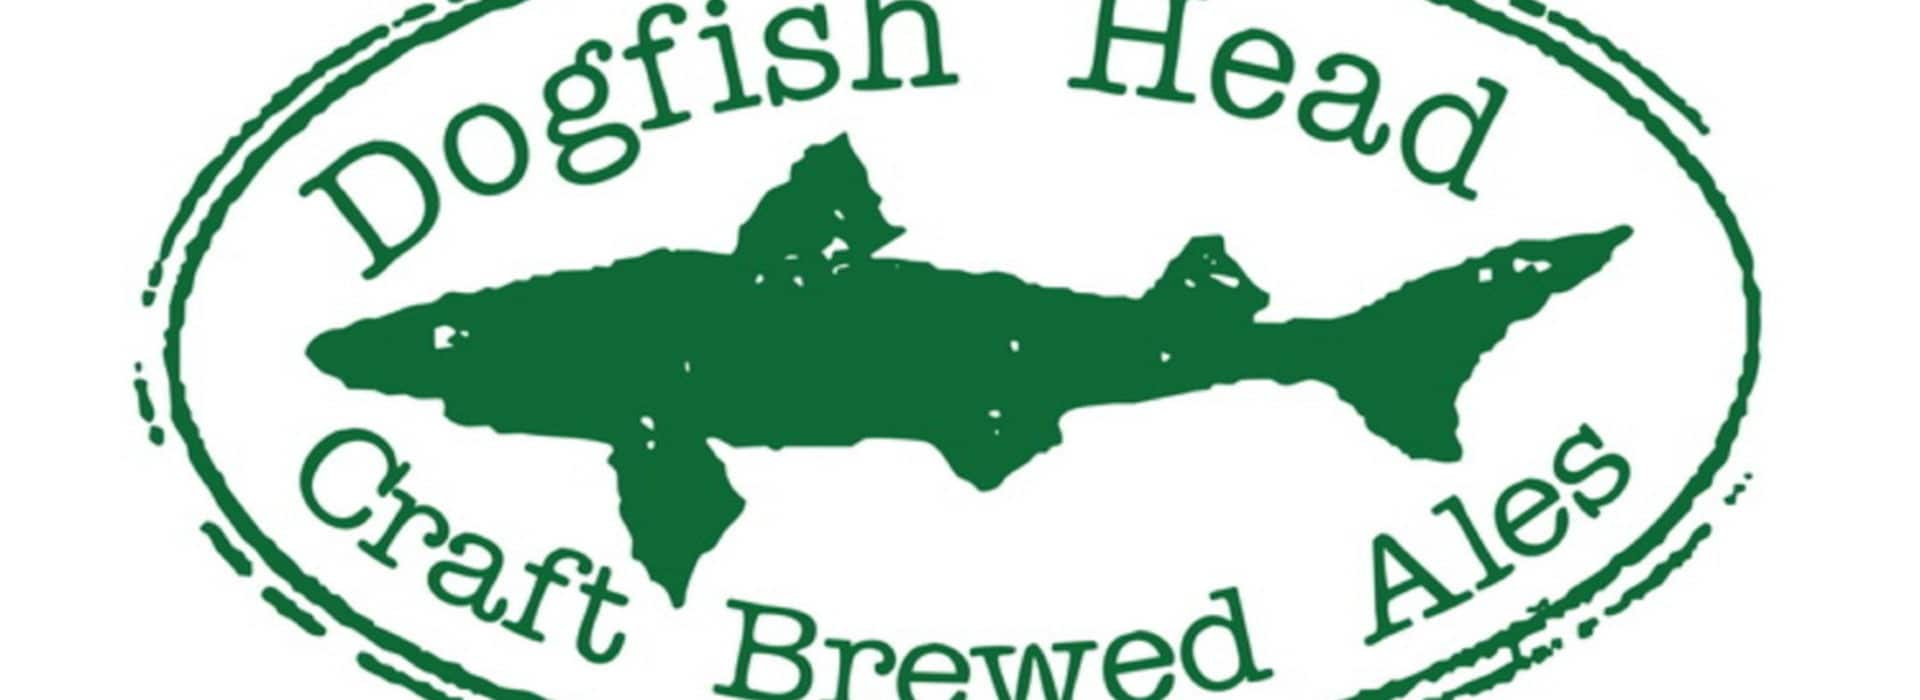 green shark dog fish logo